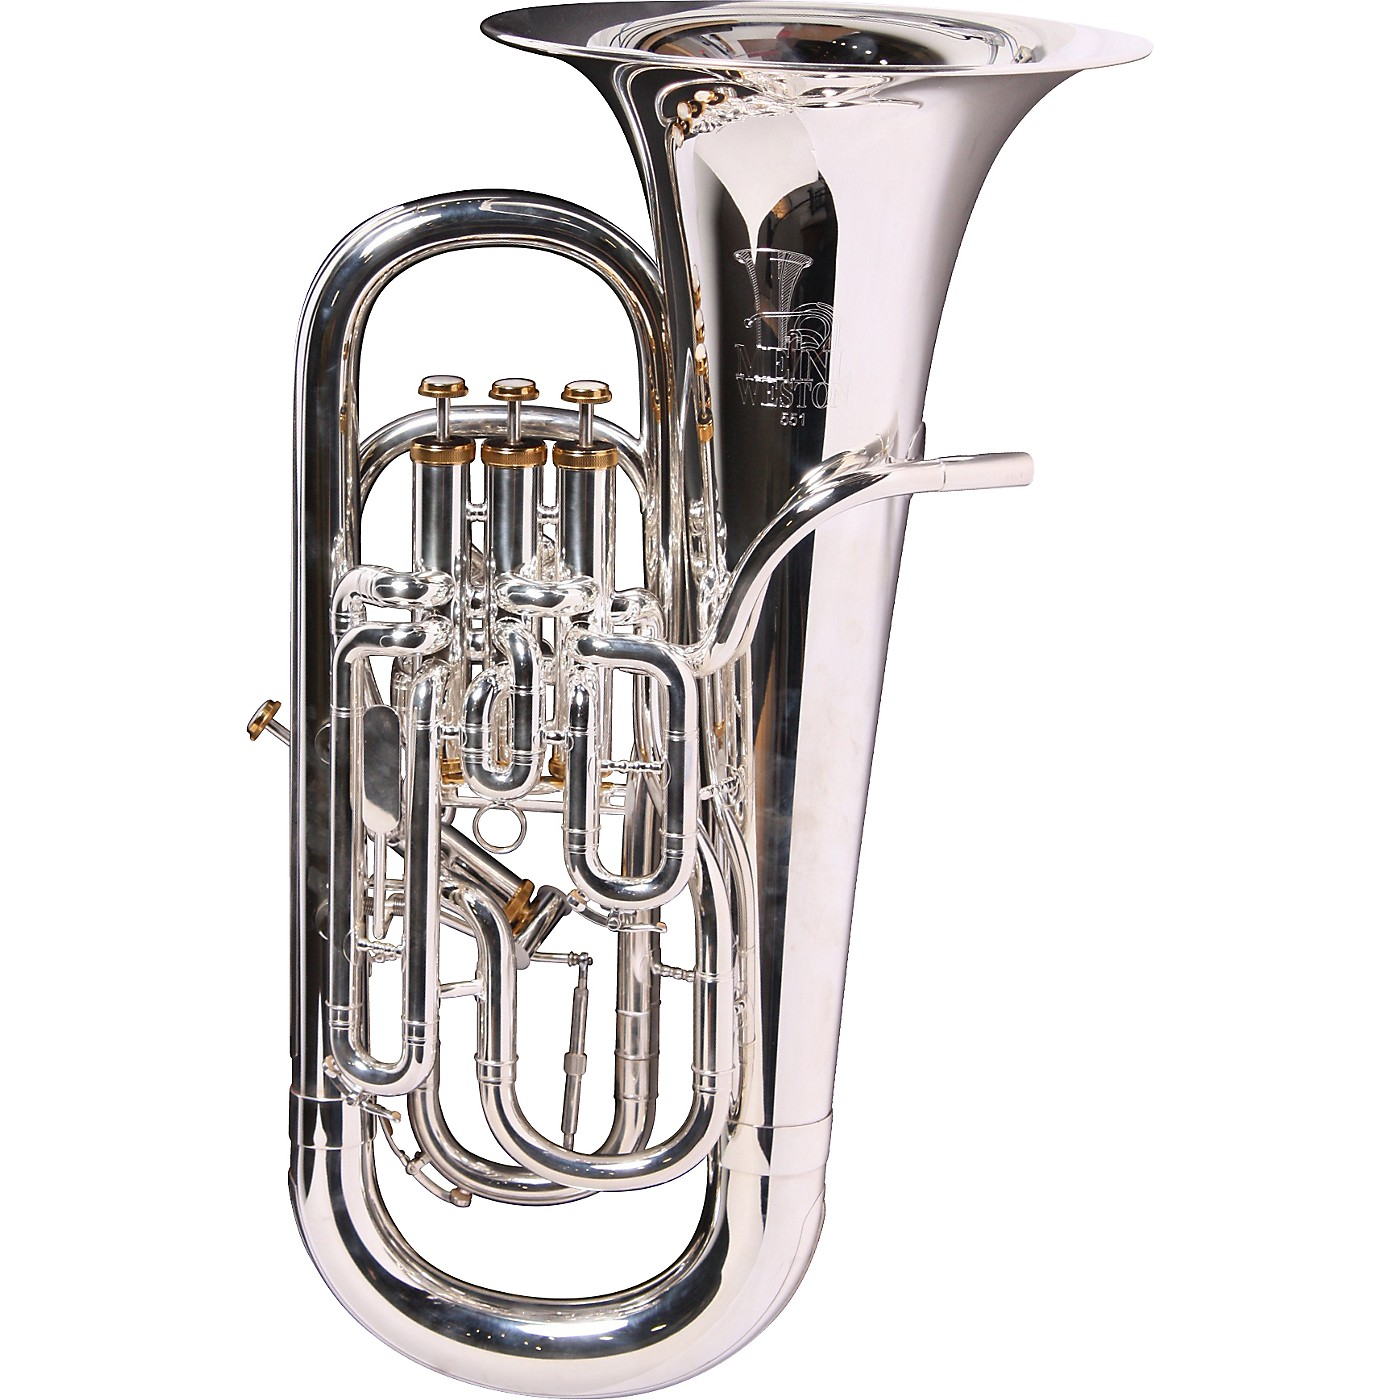 Meinl Weston 551S Deluxe Series Compensating Euphonium with Water Catcher and Tuning Trigger thumbnail